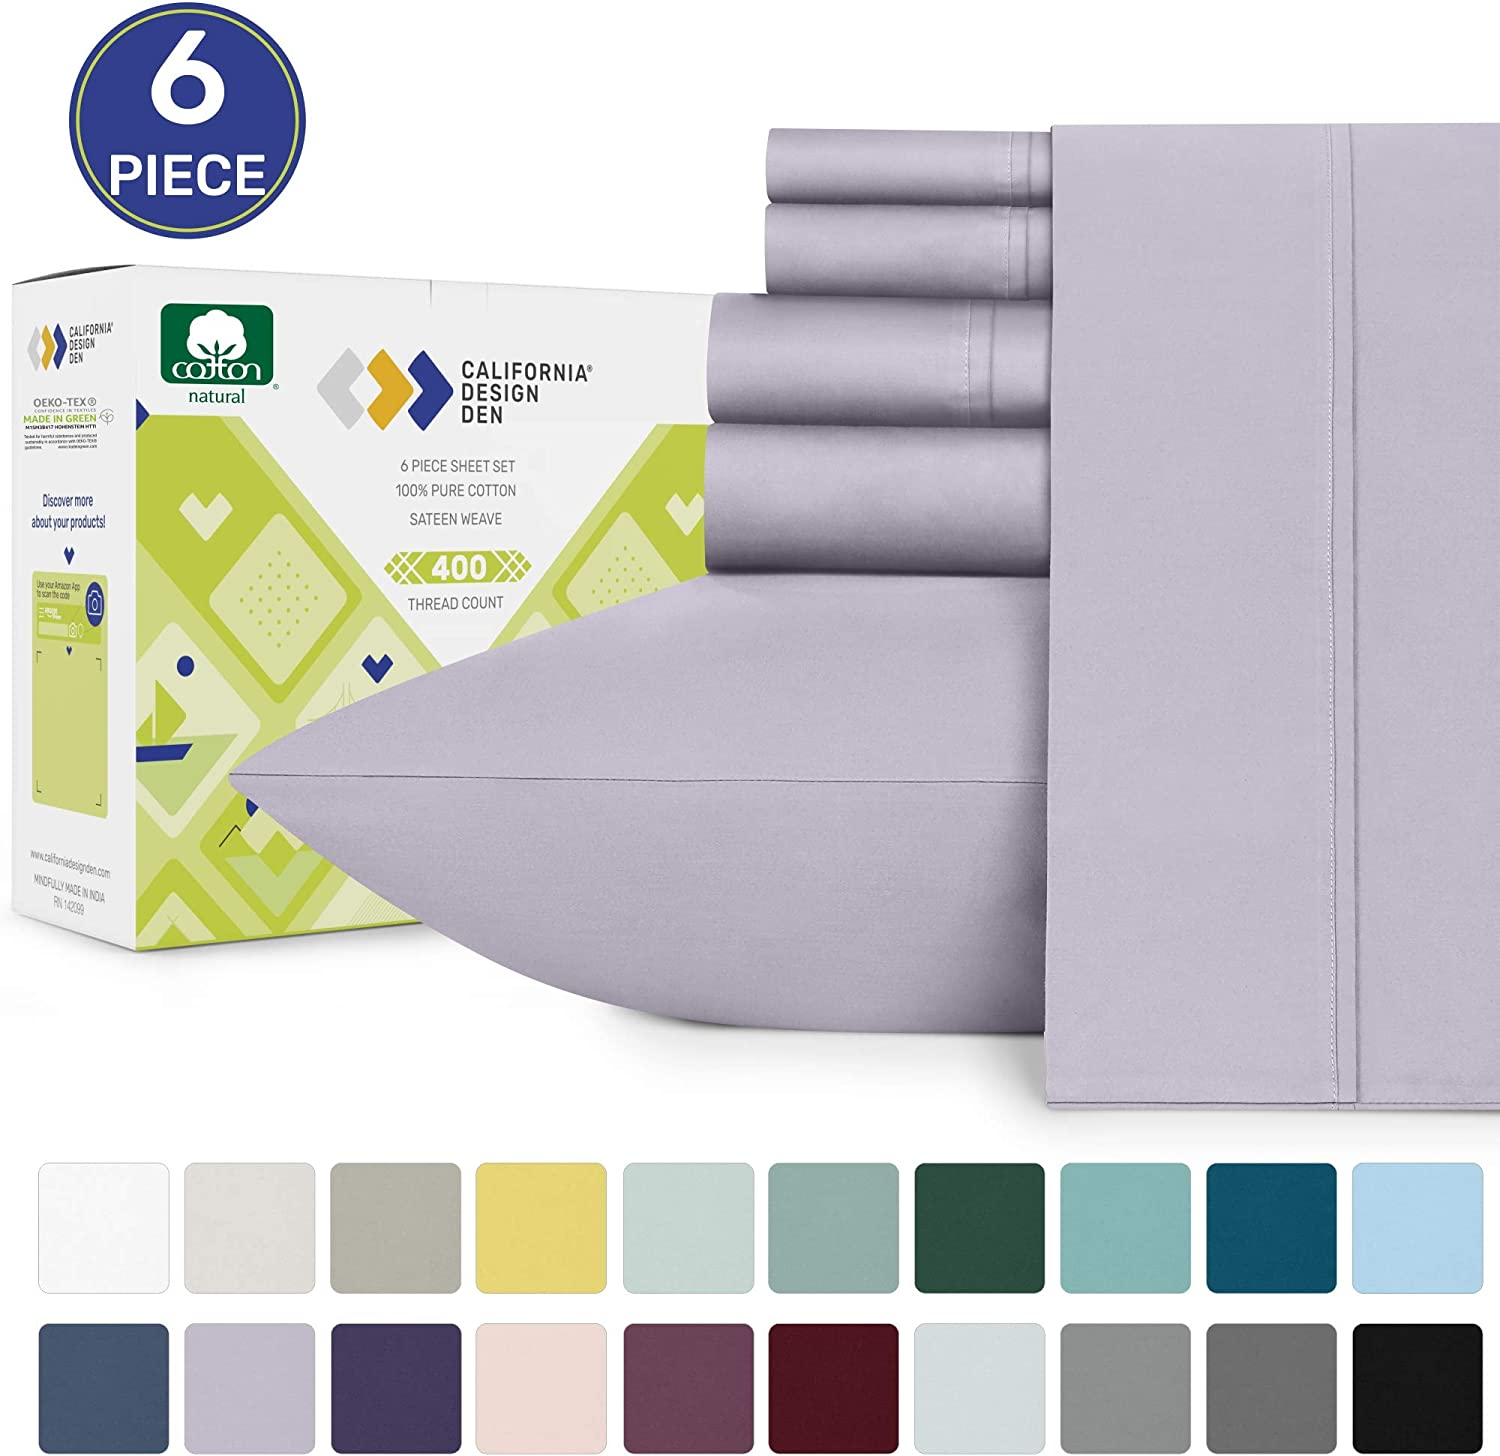 Lavender Queen Sateen Bed Sheets - 100% Pure Cotton 400 Thread Count, Solid Color 6 Piece Soft Sheet Set, Comfortable Wrinkle Resistant Bedding, Deep Pocket Fits Mattress 16 Inches: Home & Kitchen